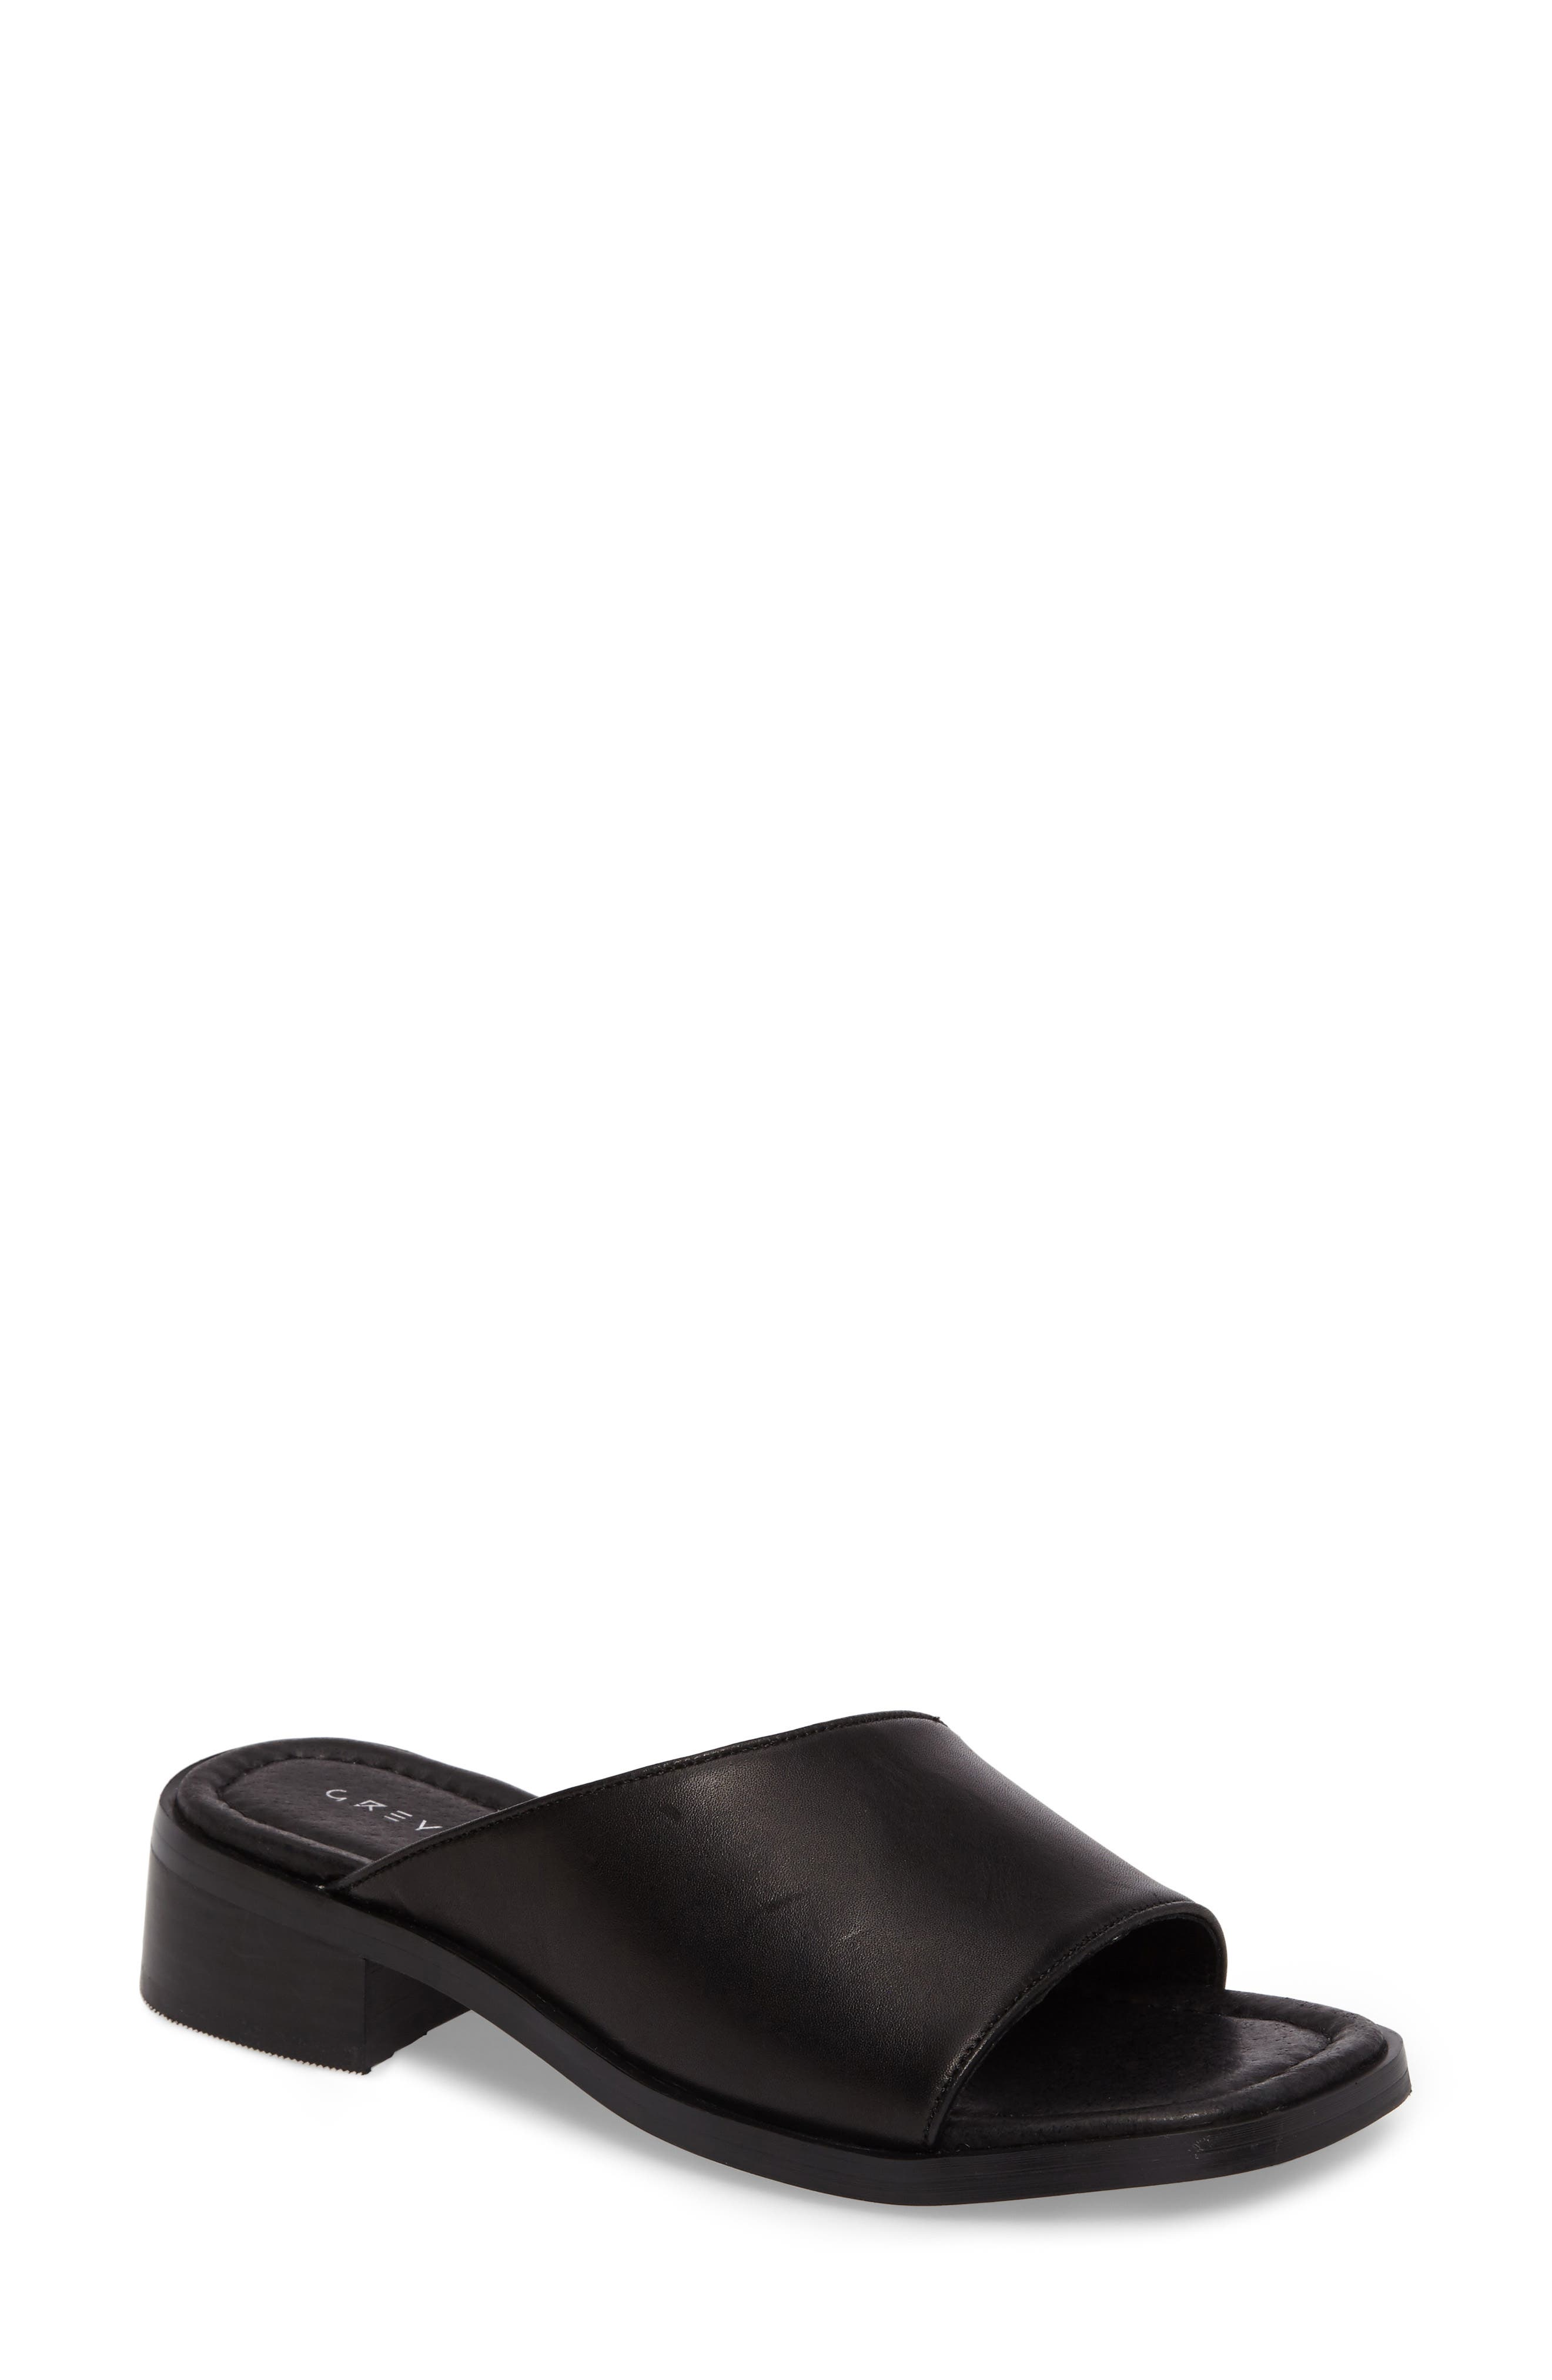 Paula Slide Sandal,                             Main thumbnail 1, color,                             Black